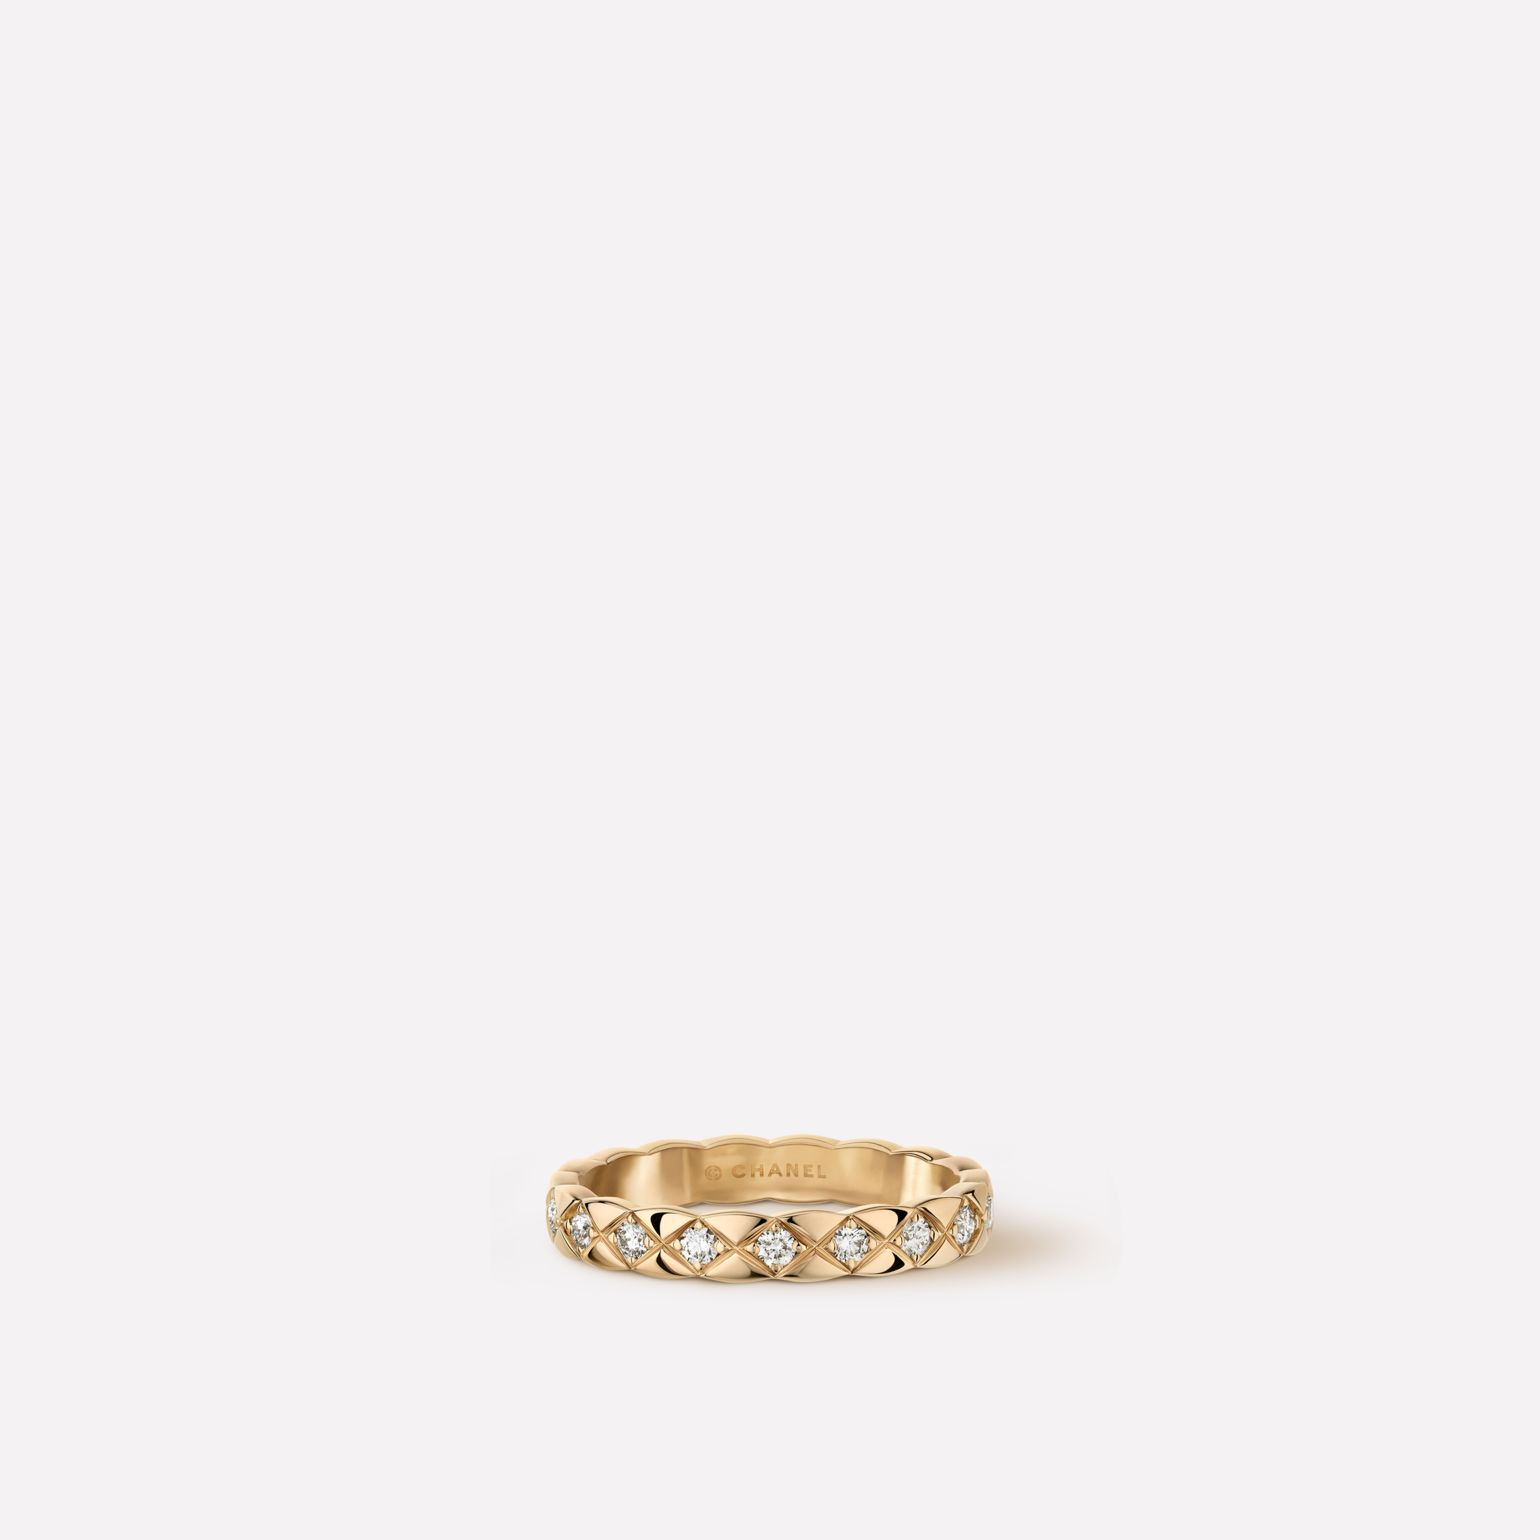 Coco Crush Ring Steppmotiv, kleines modell, 18 Karat BEIGEGOLD, Diamanten